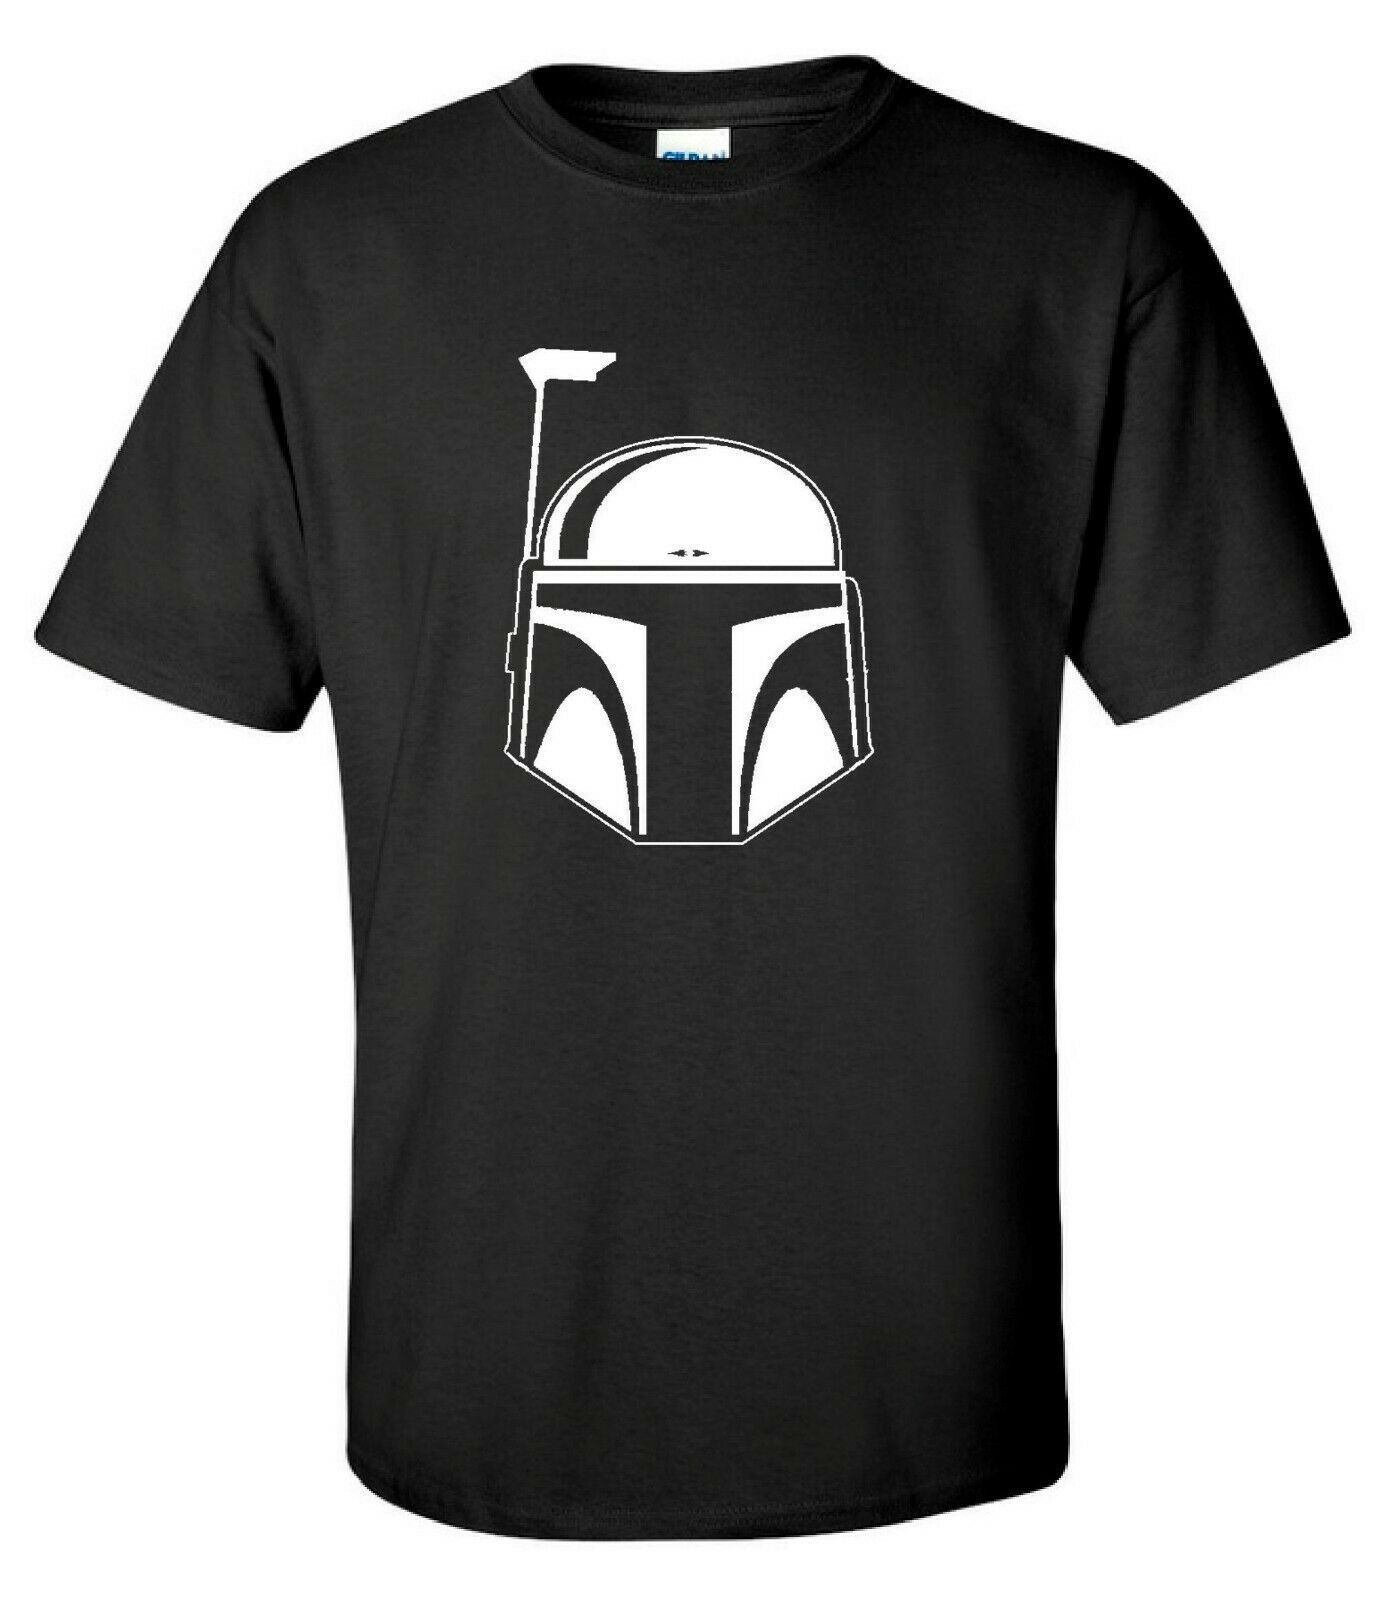 Boba Fett Star Wars Film de Science-Fiction T-Shirt Hommes Casual Plus Size T-Shirts Hip Hop Style Tops Tee S-3Xl image